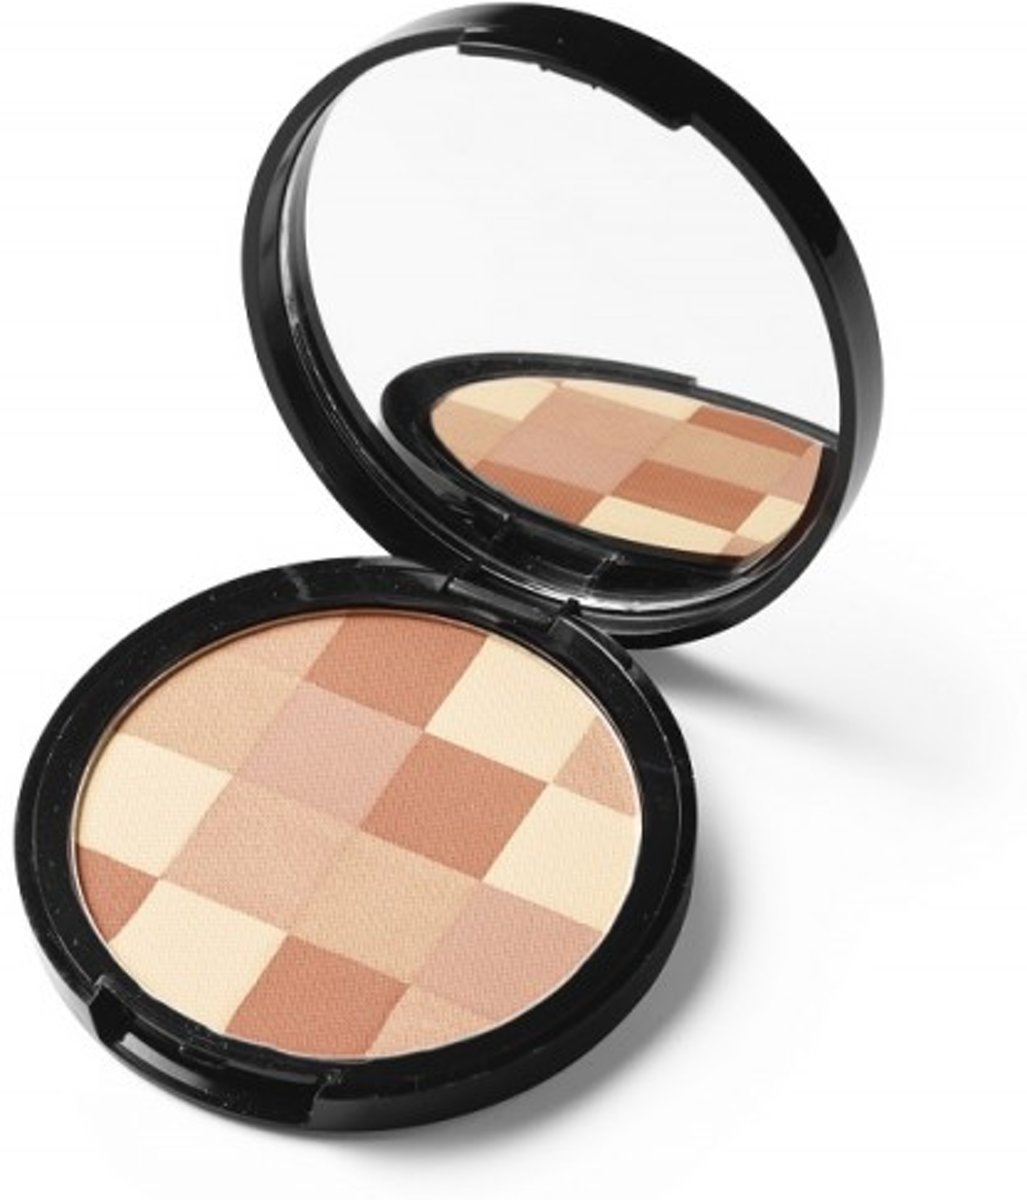 Ariane Inden Mosaic Face Powder - Bronzing Bonfire Beach - Bronzingpoeder & Blush